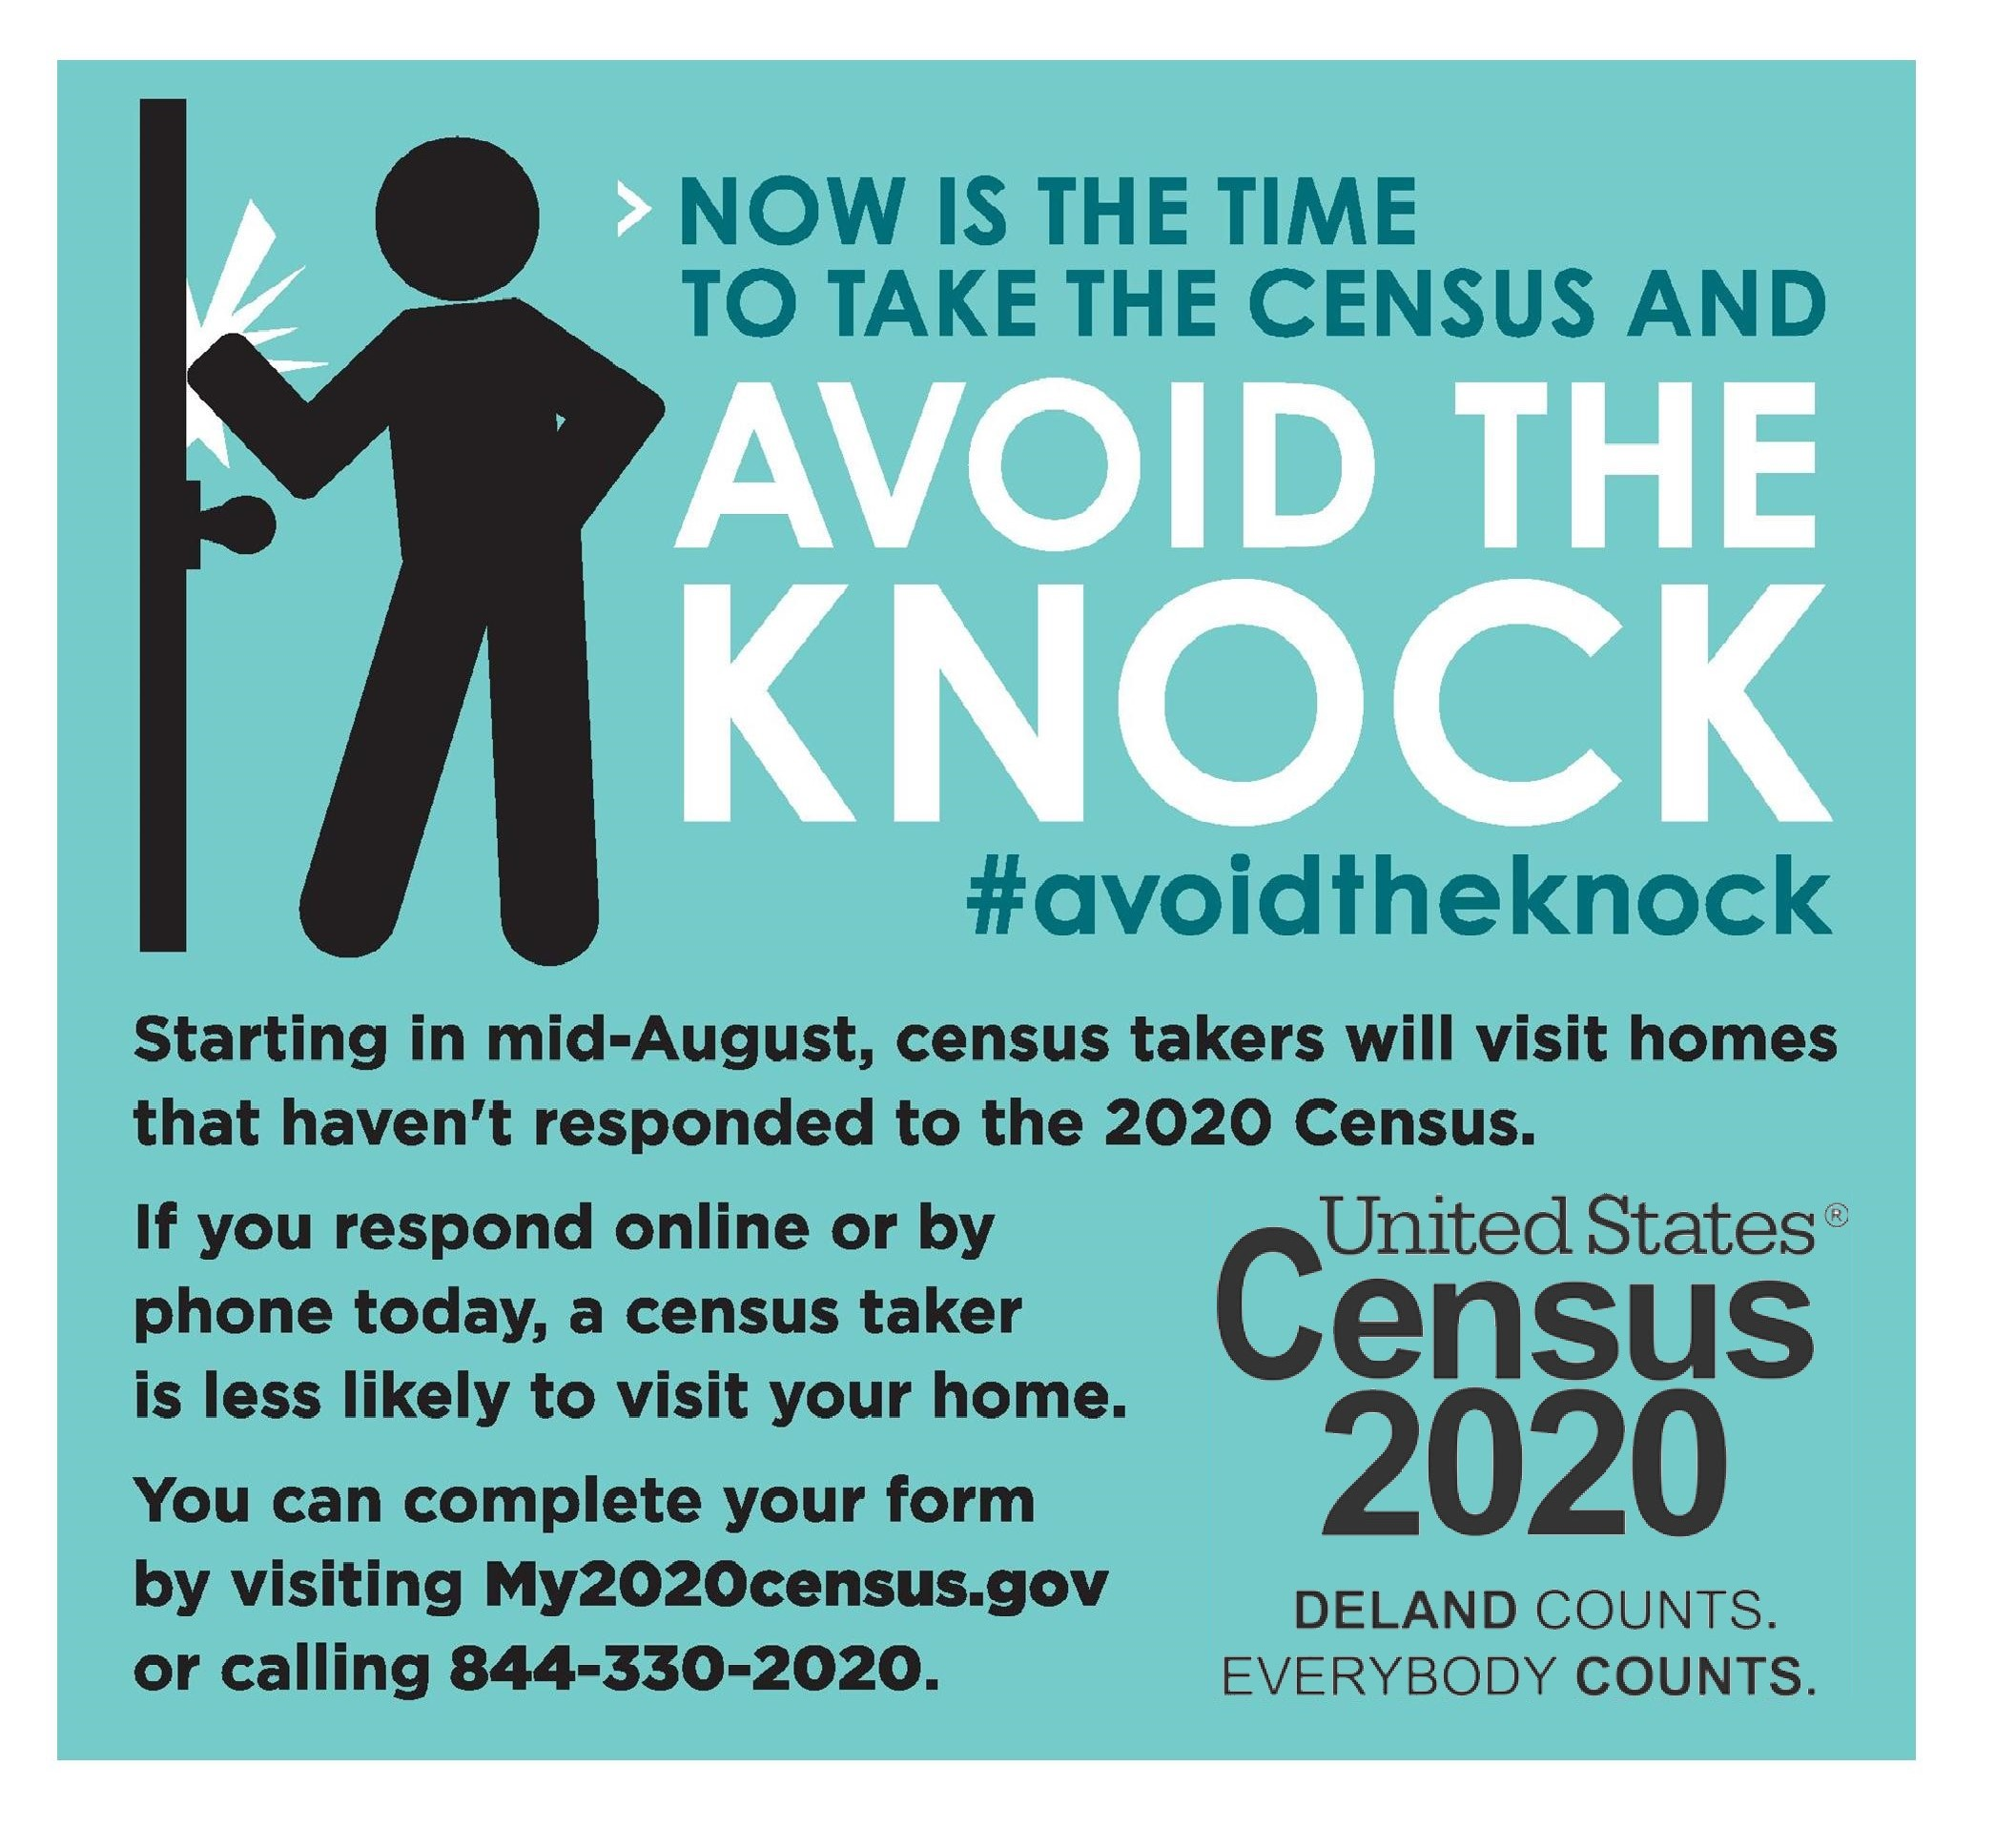 2020 Census - Avoid the Knock